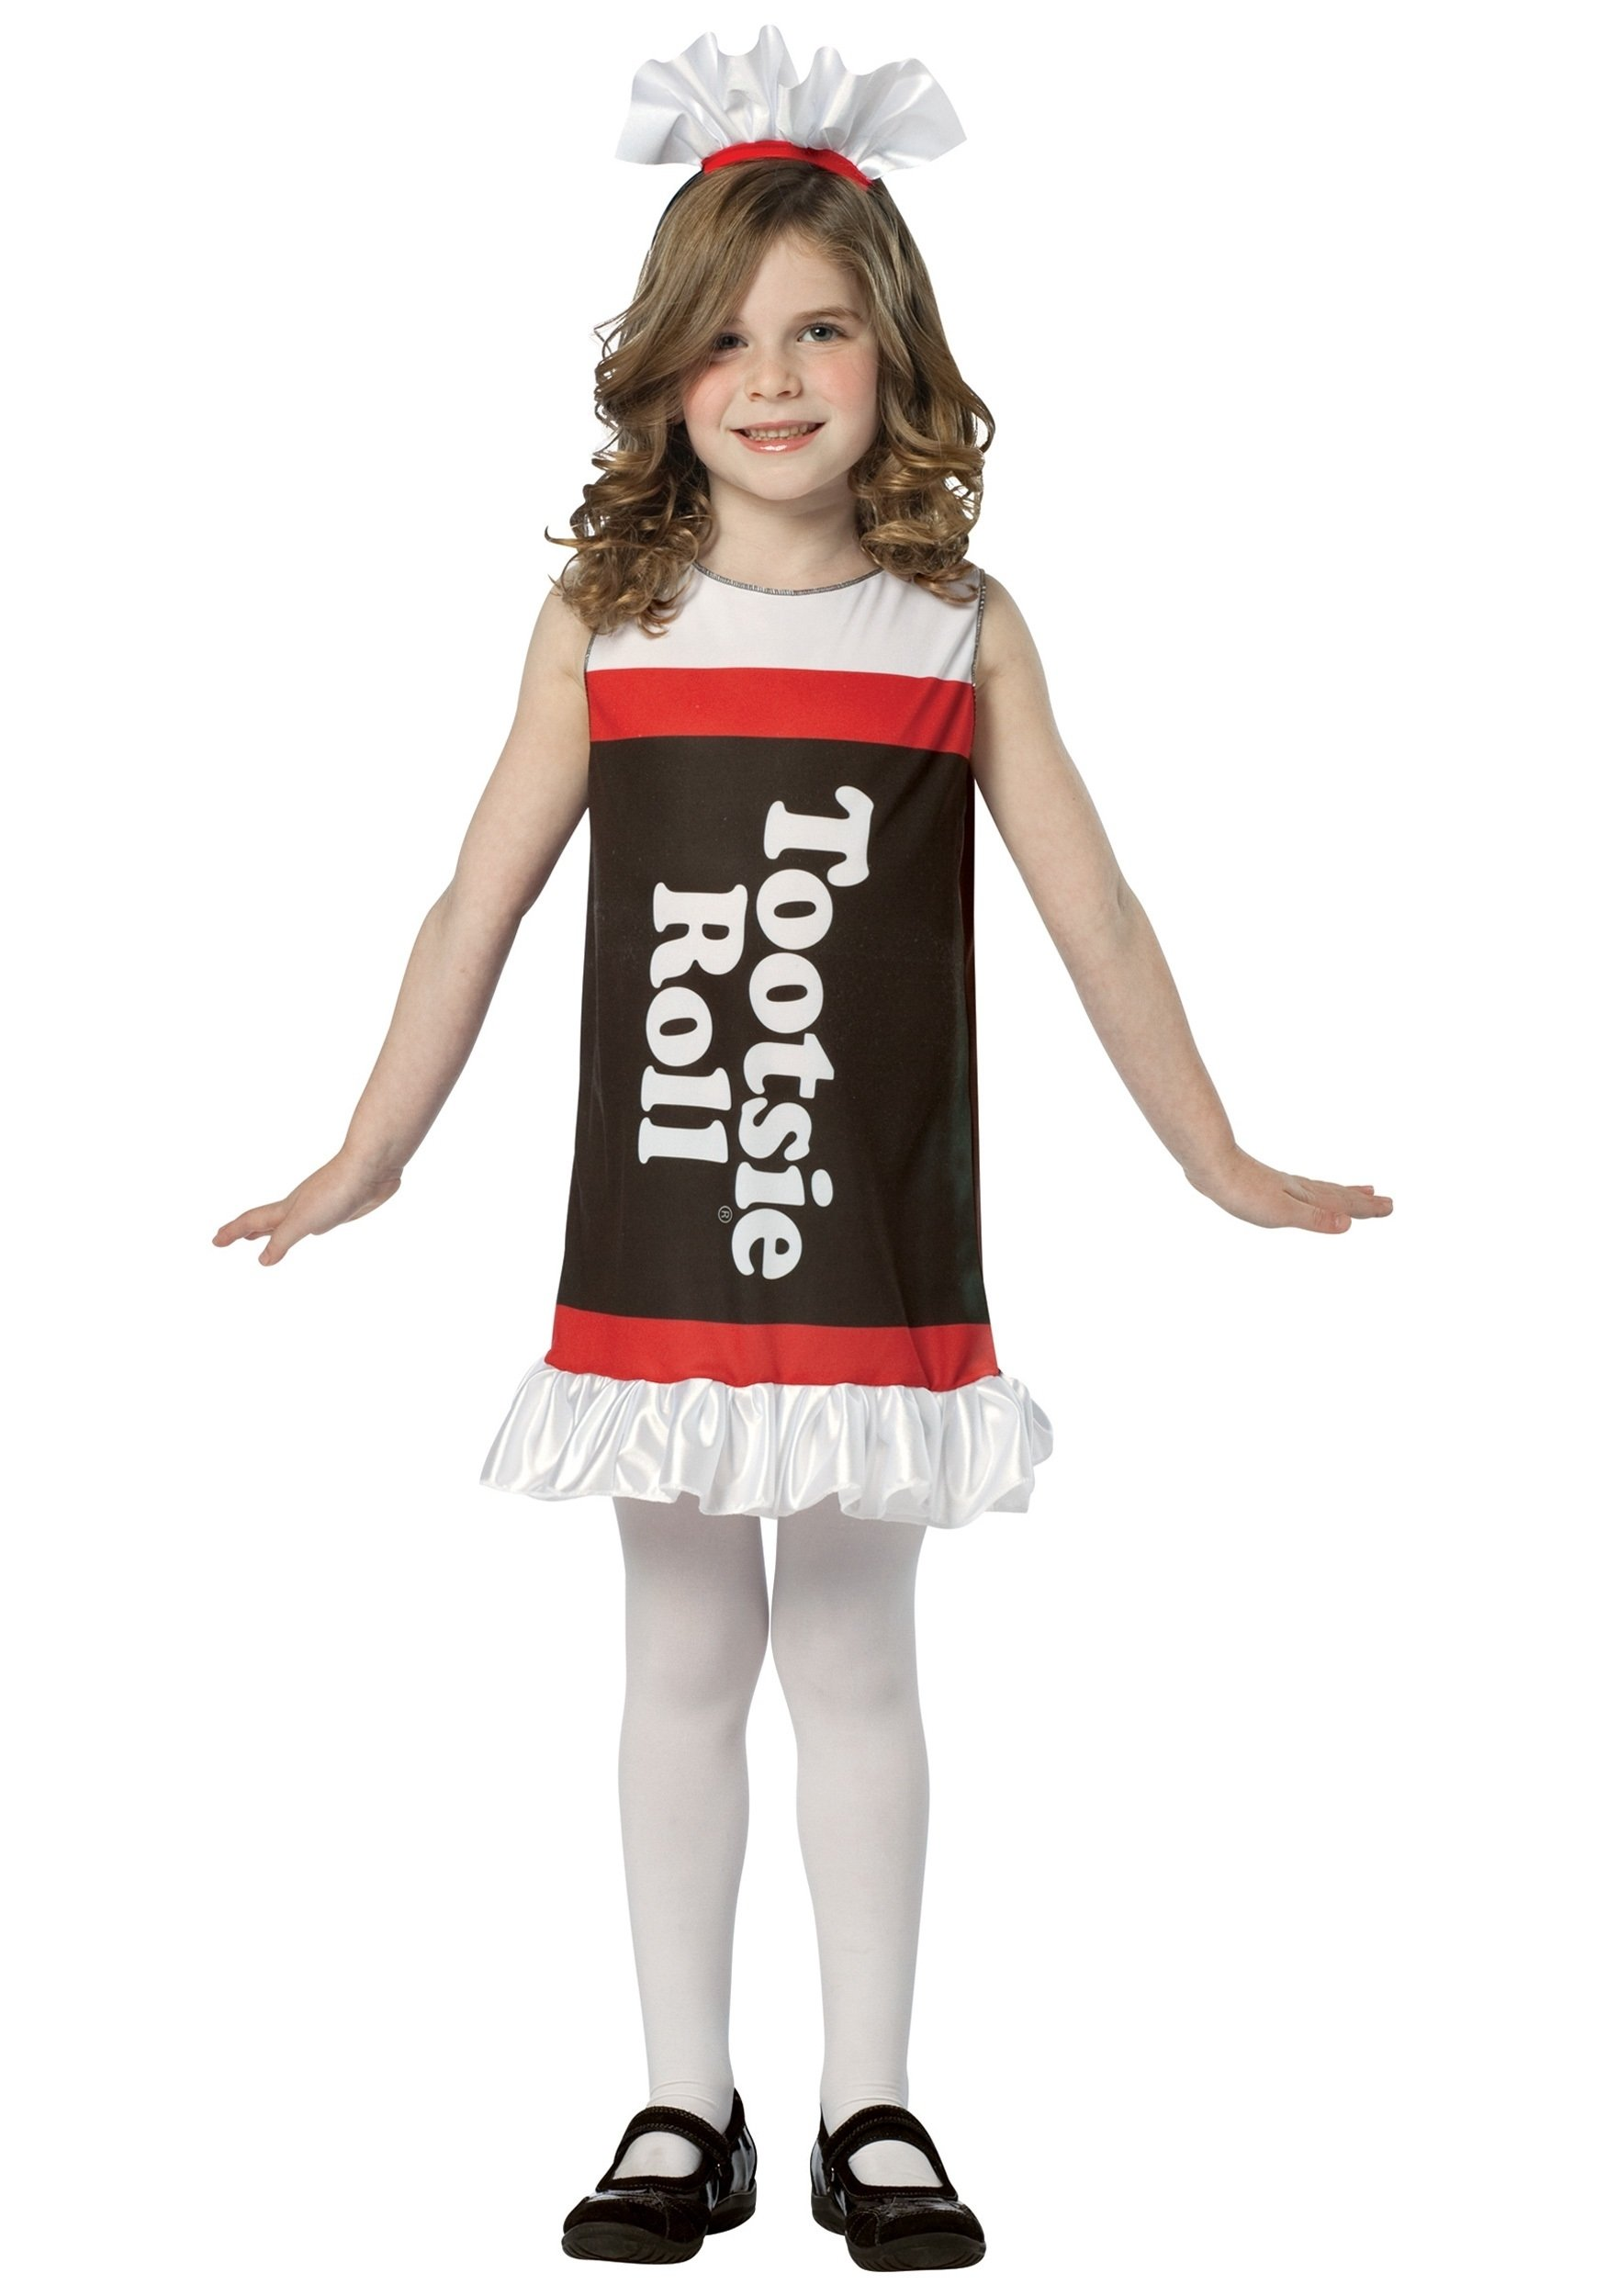 10 Amazing Halloween Costume Ideas For Boys girls tootsie roll dress 1 2020